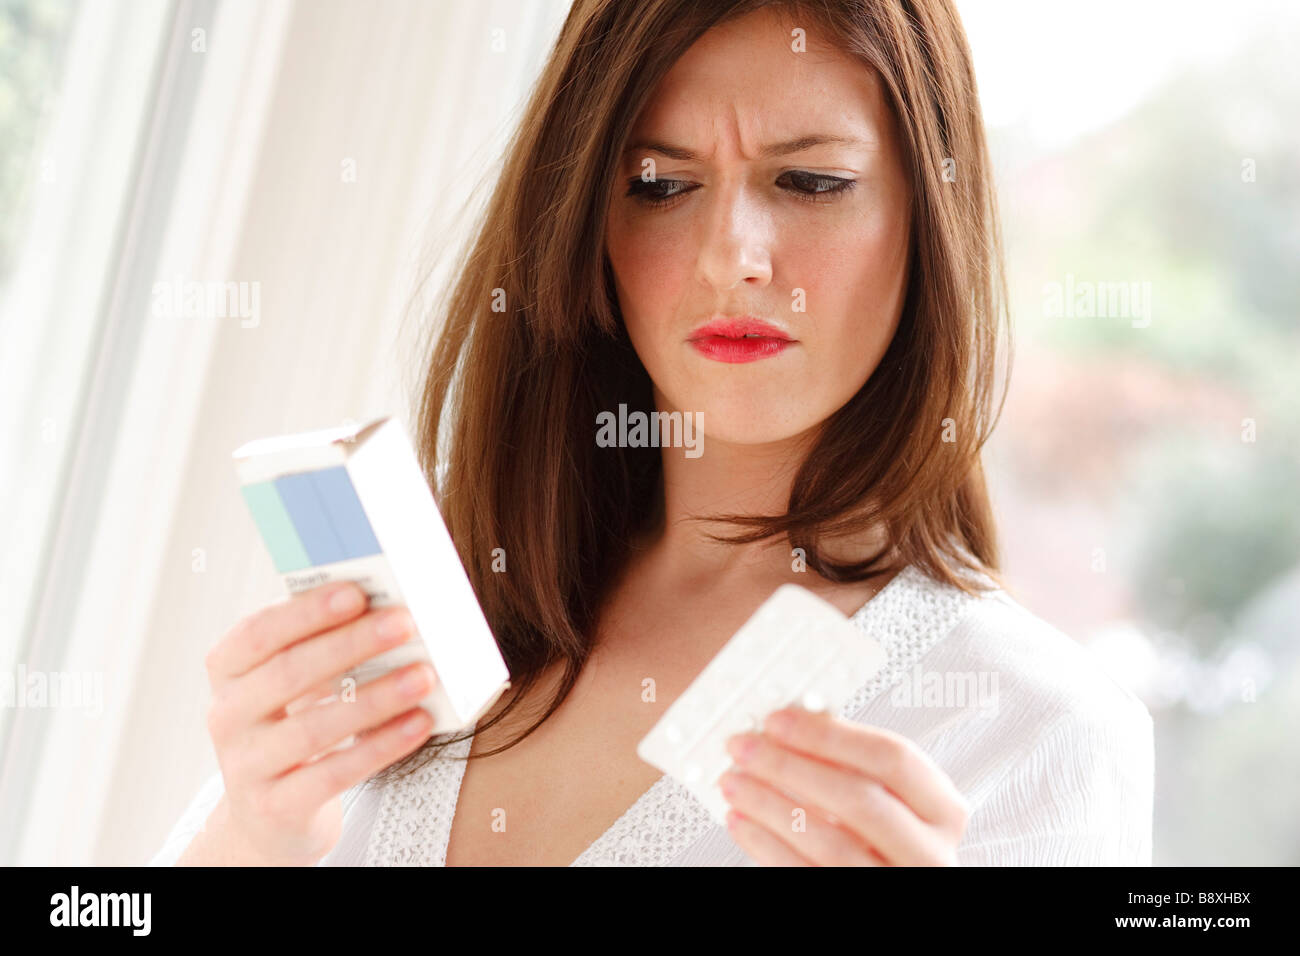 Woman looking at medication - Stock Image